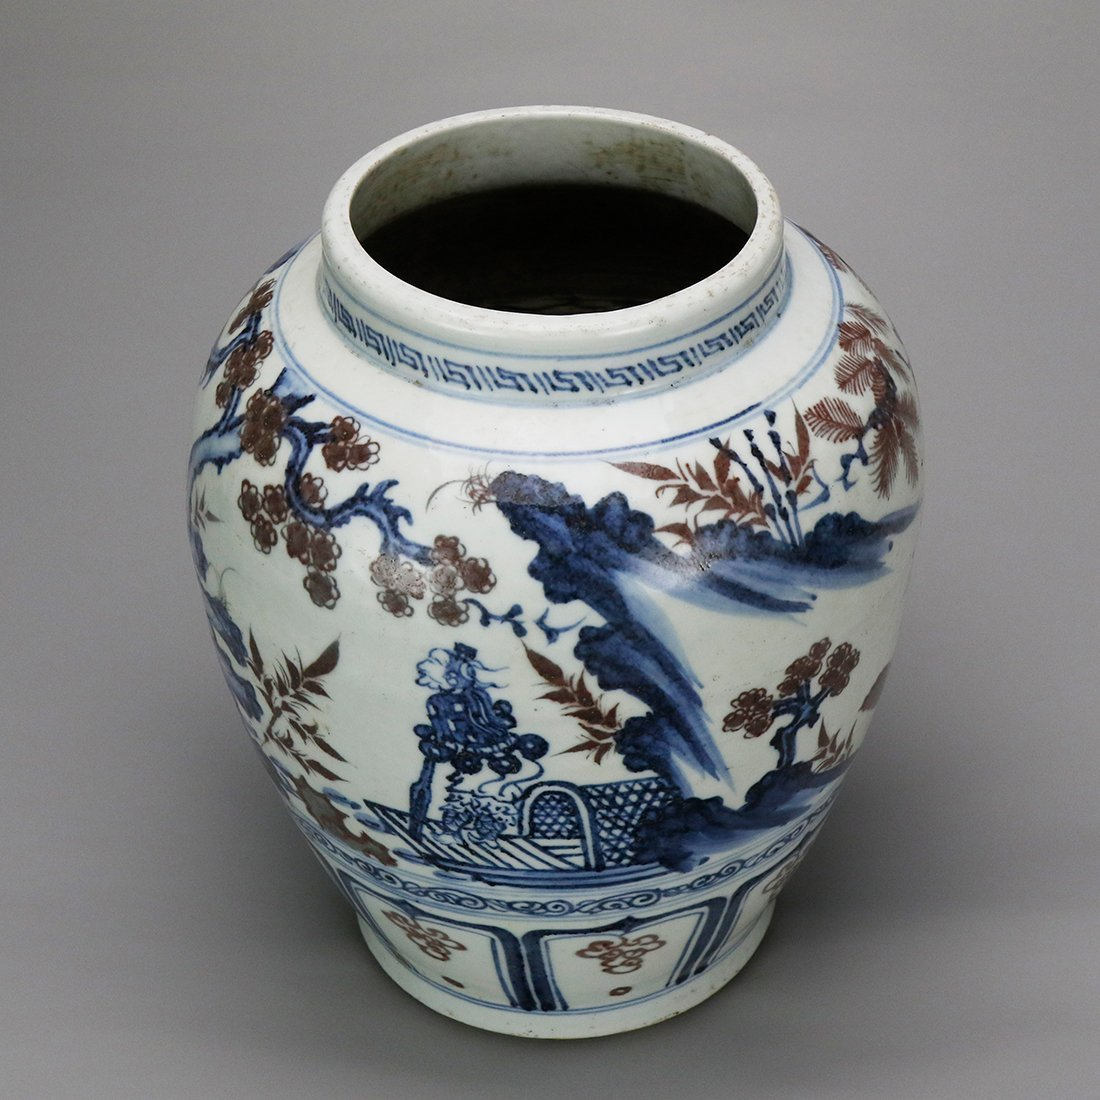 China 15 Century blue and white glazed red ceramic pot - 6